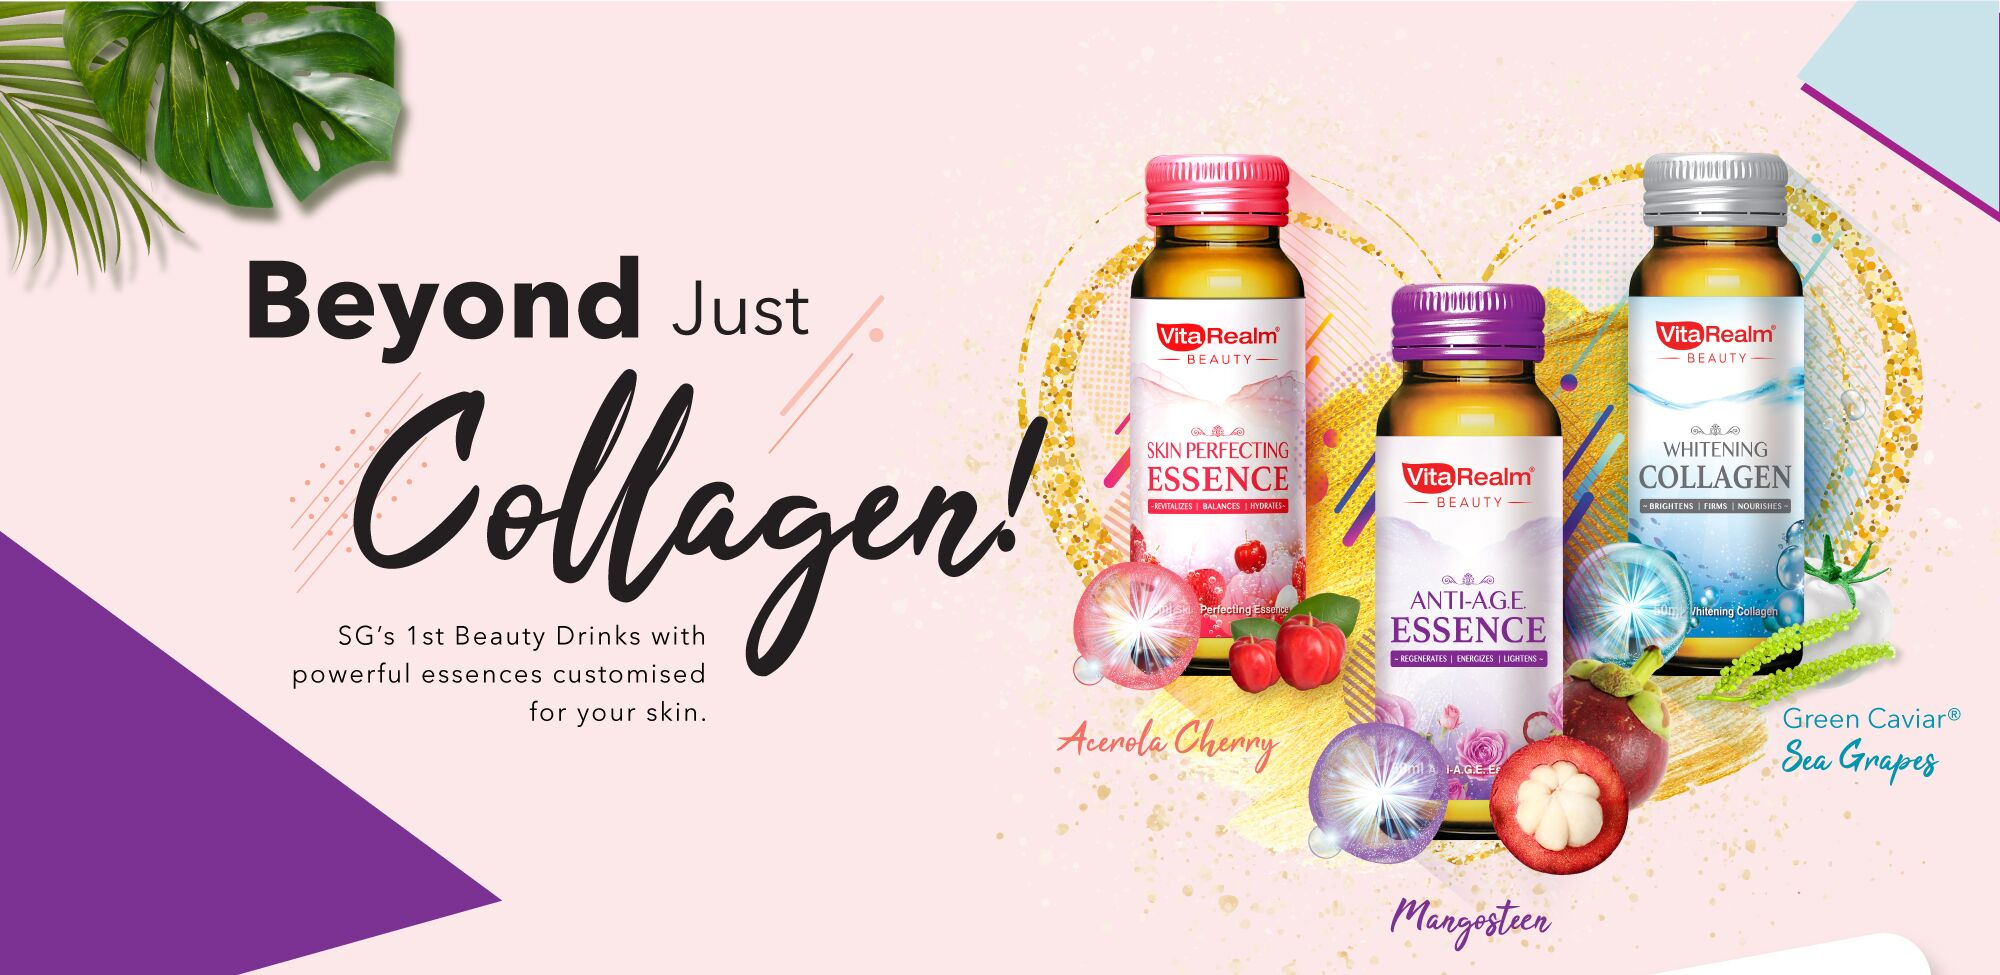 Vitarealm Beauty Collagen is good for oily skin